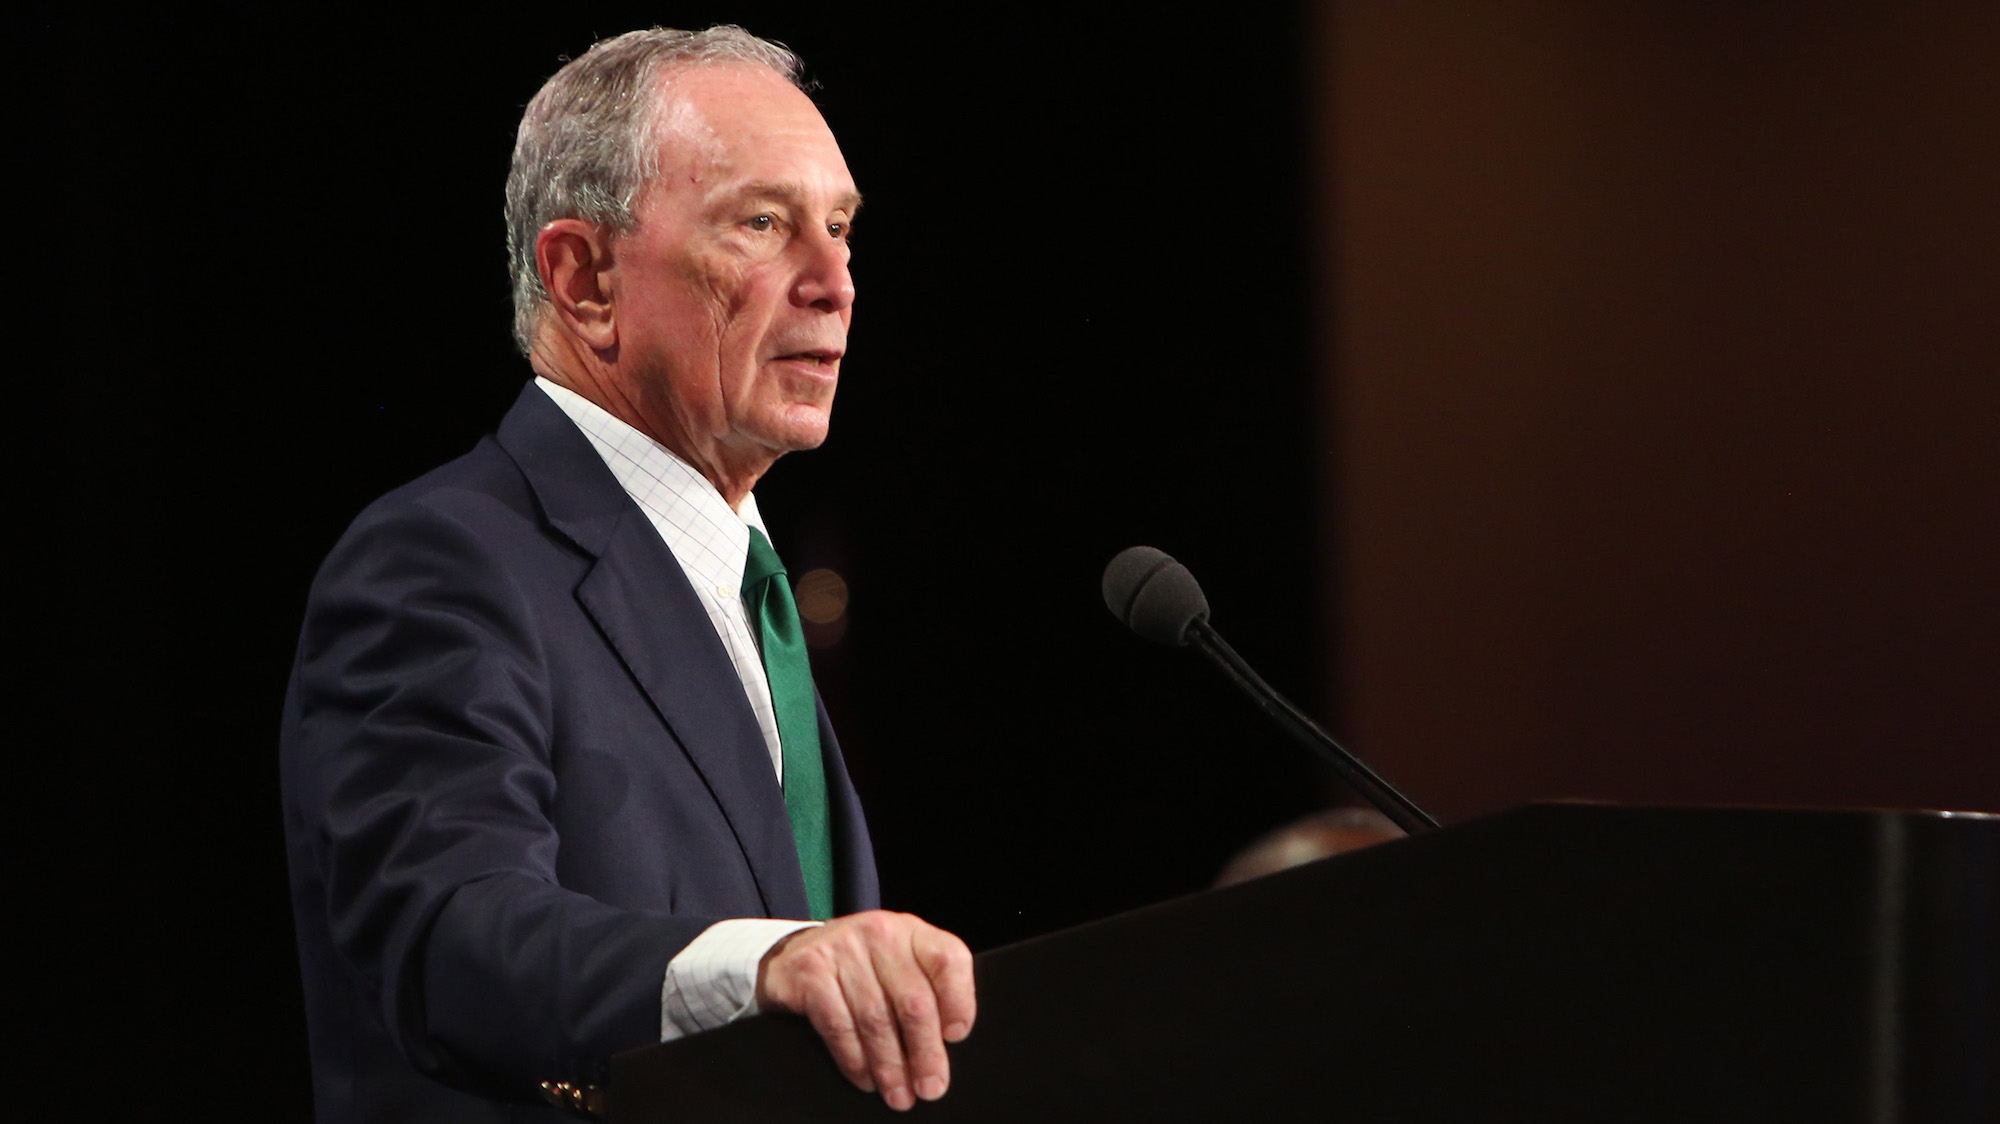 Bloomberg Pledges $64 Million to Anti-Coal Initiatives